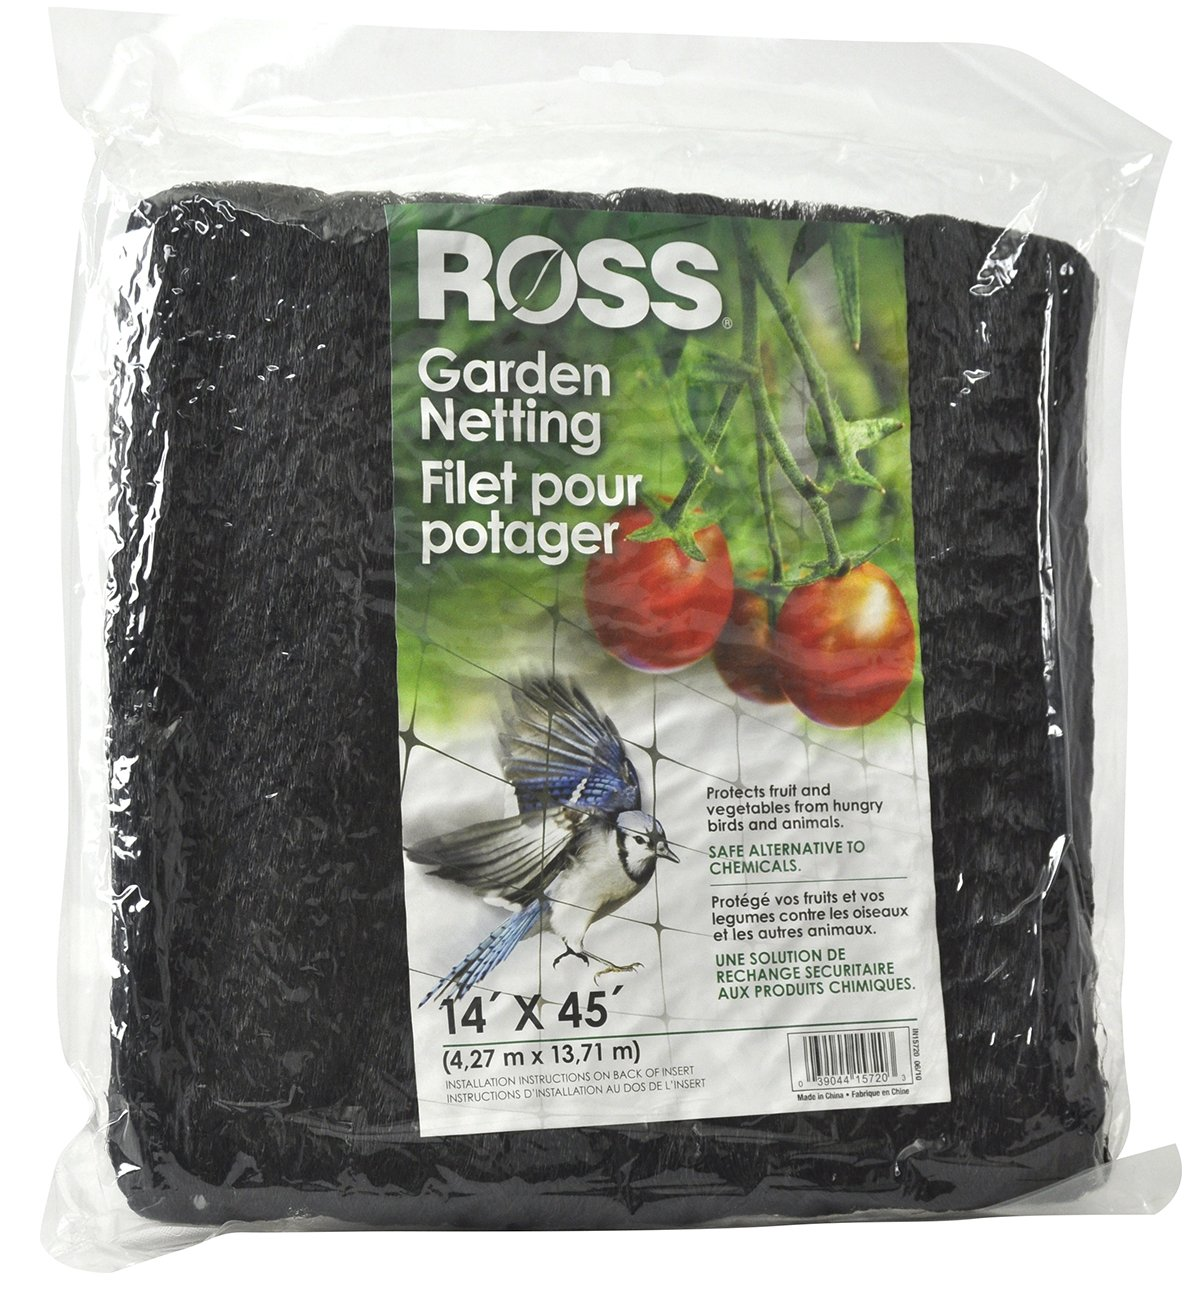 Ross Garden Netting (Multi-Use Netting for Use Around Yard and Garden) Black Mesh Plastic Netting, 14 feet x 45 feet